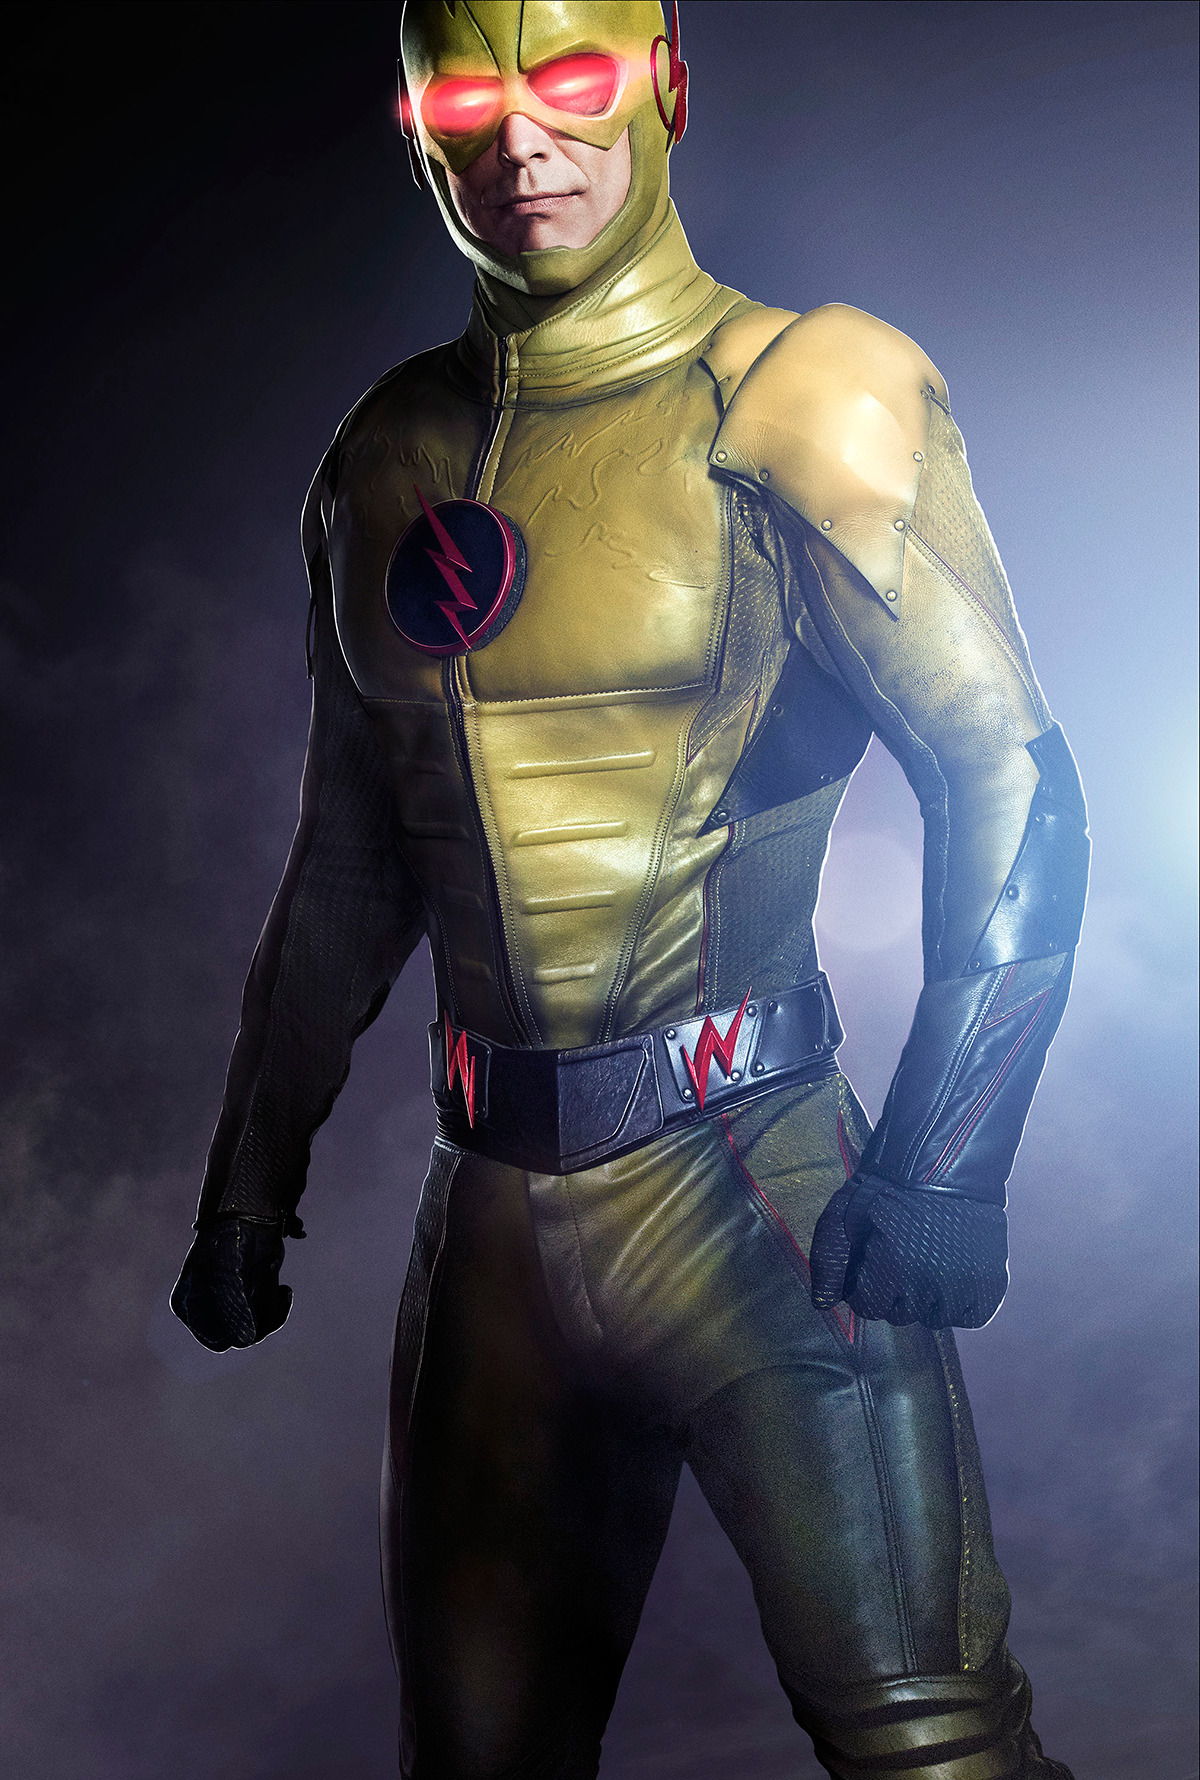 http://img4.wikia.nocookie.net/__cb20150313225039/arrow/images/8/89/Reverse-Flash_promotional_image.png